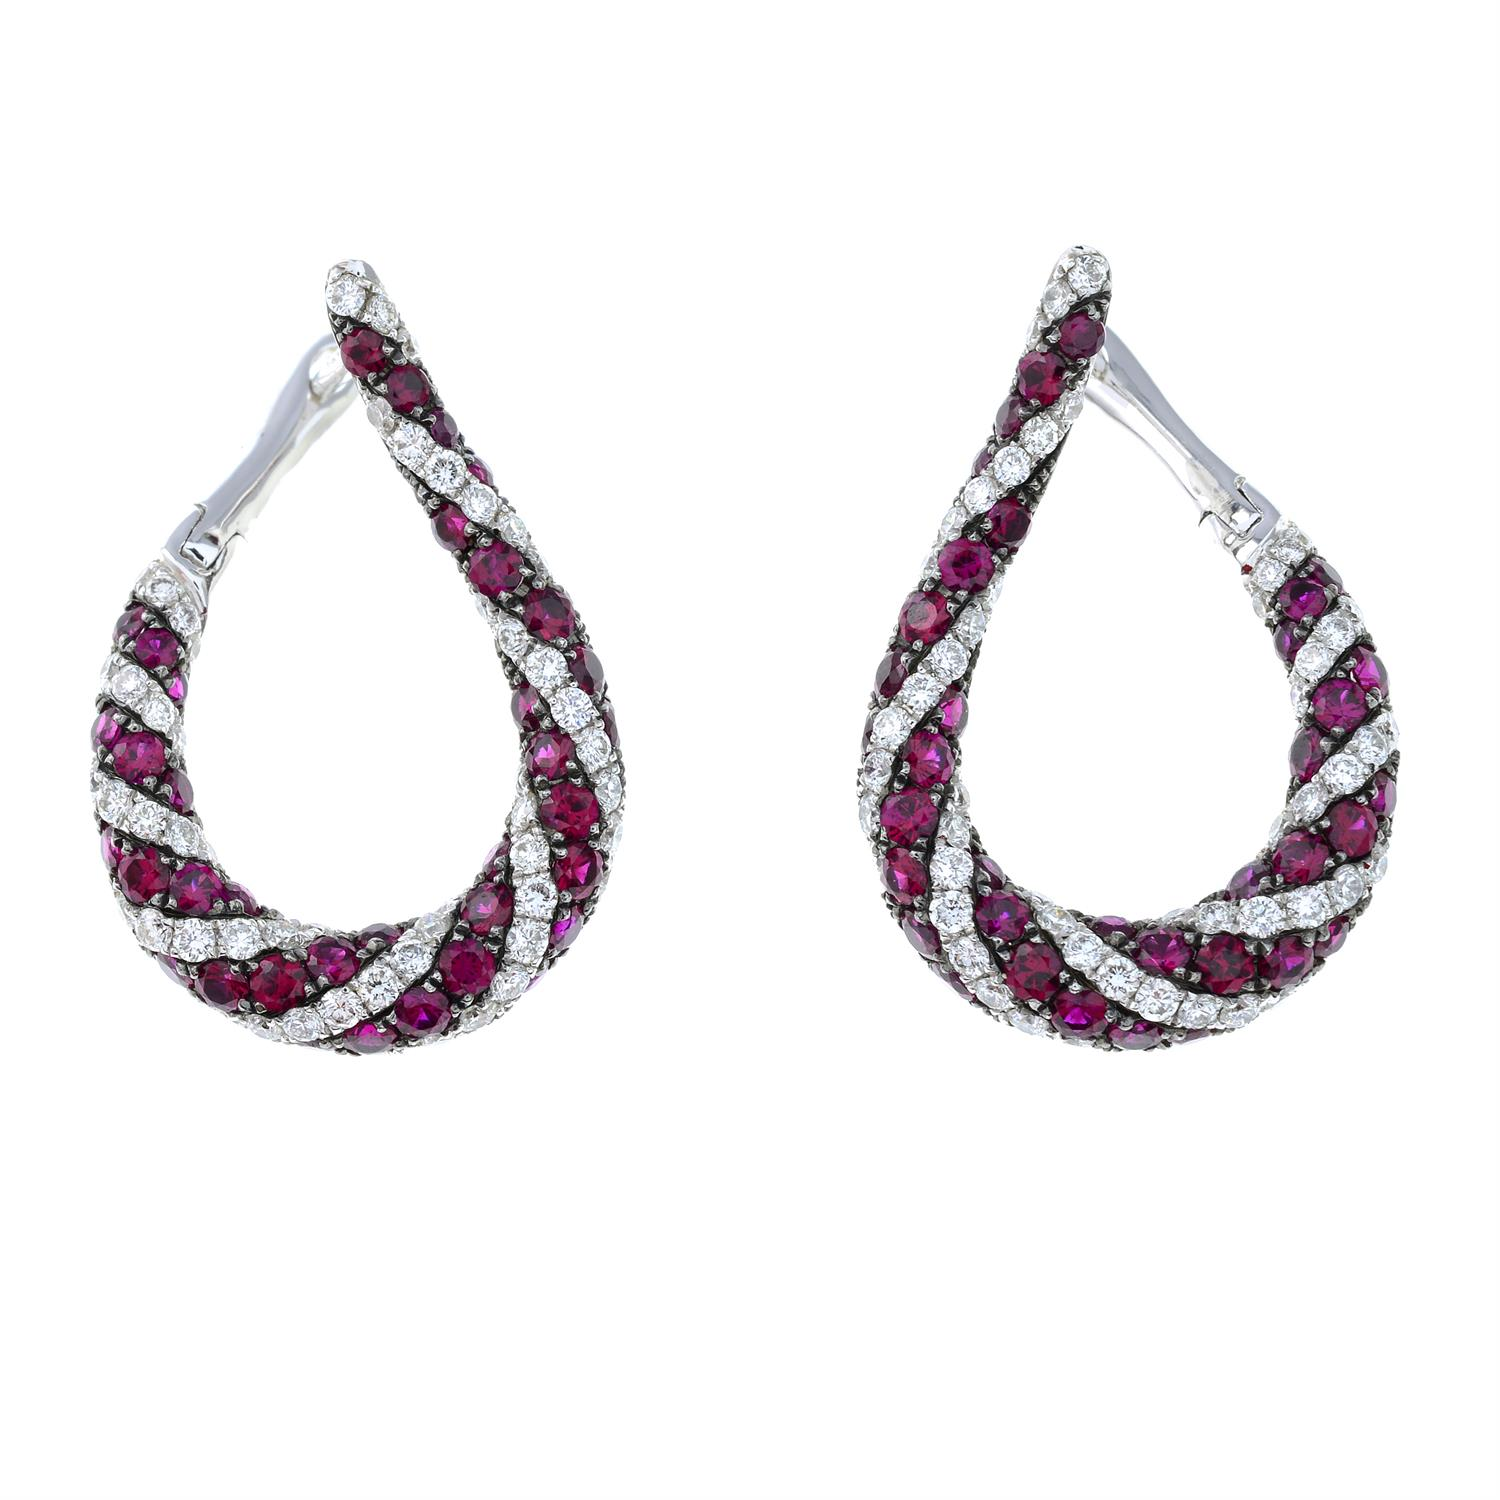 A pair of 18ct gold brilliant-cut diamond and ruby spiral hoop earrings. - Image 2 of 4